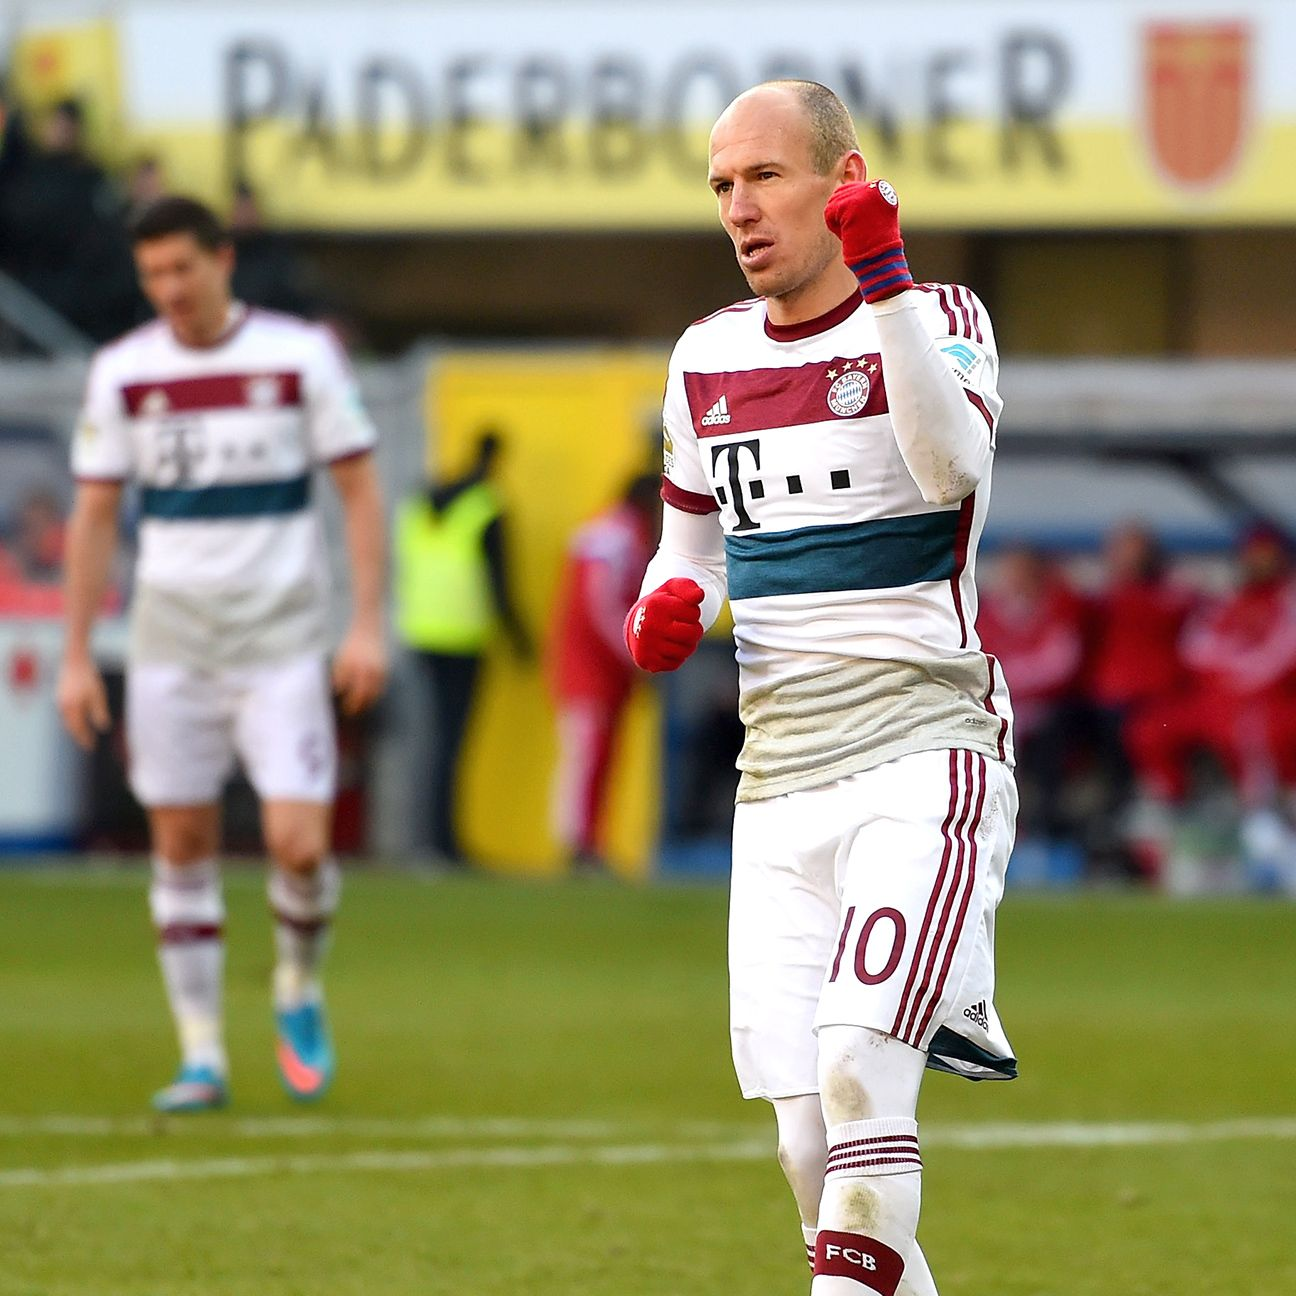 Arjen Robben was rock solid in registering a brace in Bayern's romp at Paderborn.